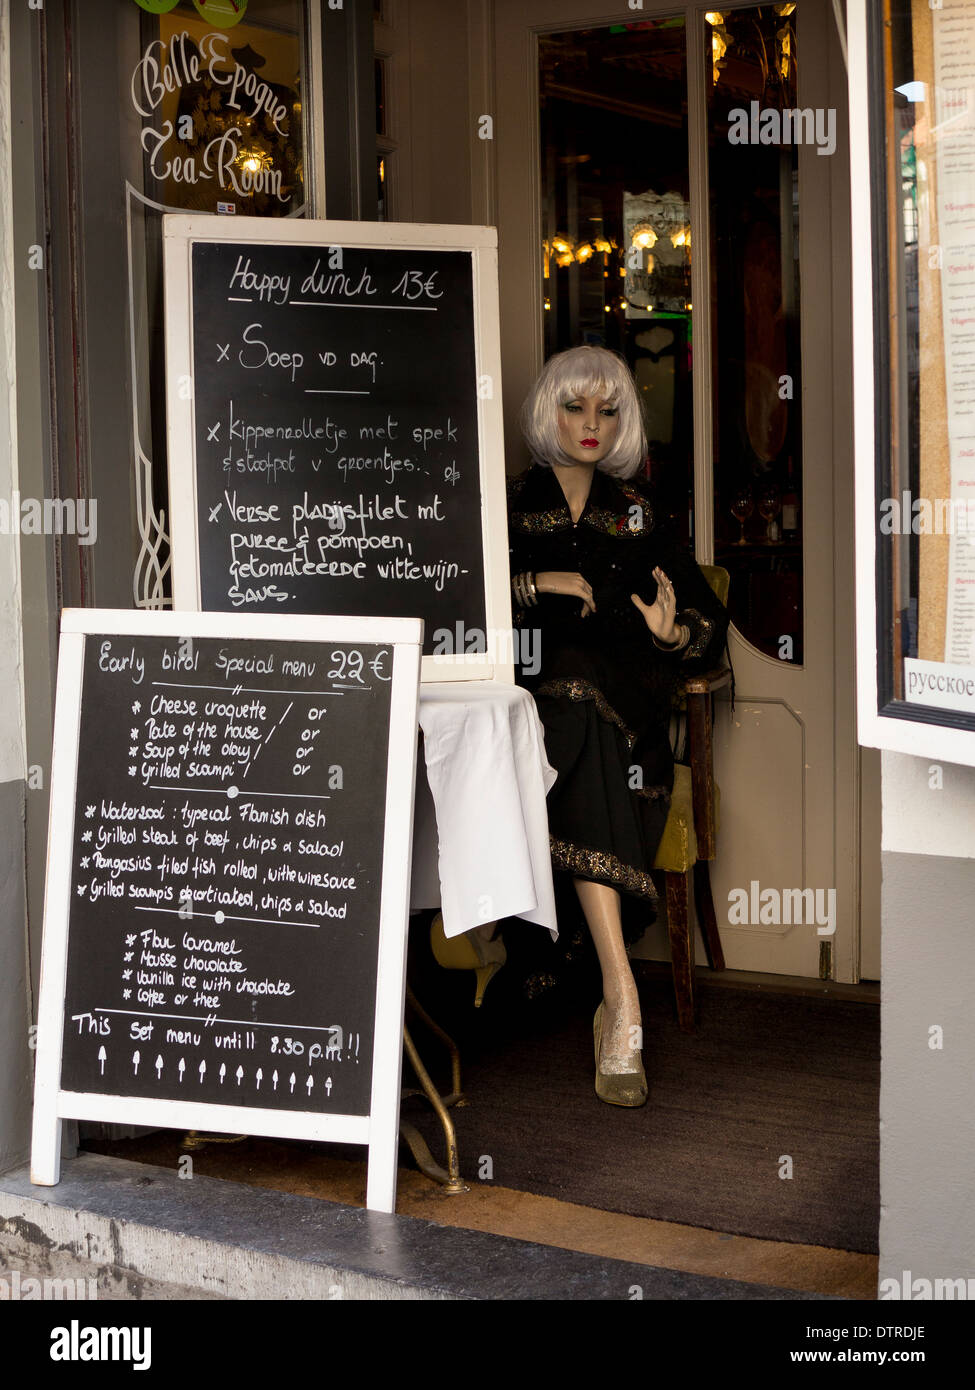 Menu blackboards and a glamourous mannequin at the entrance to Bell Epoque tearoom on Zuidzandstraat, Bruges (Brugge) - Stock Image